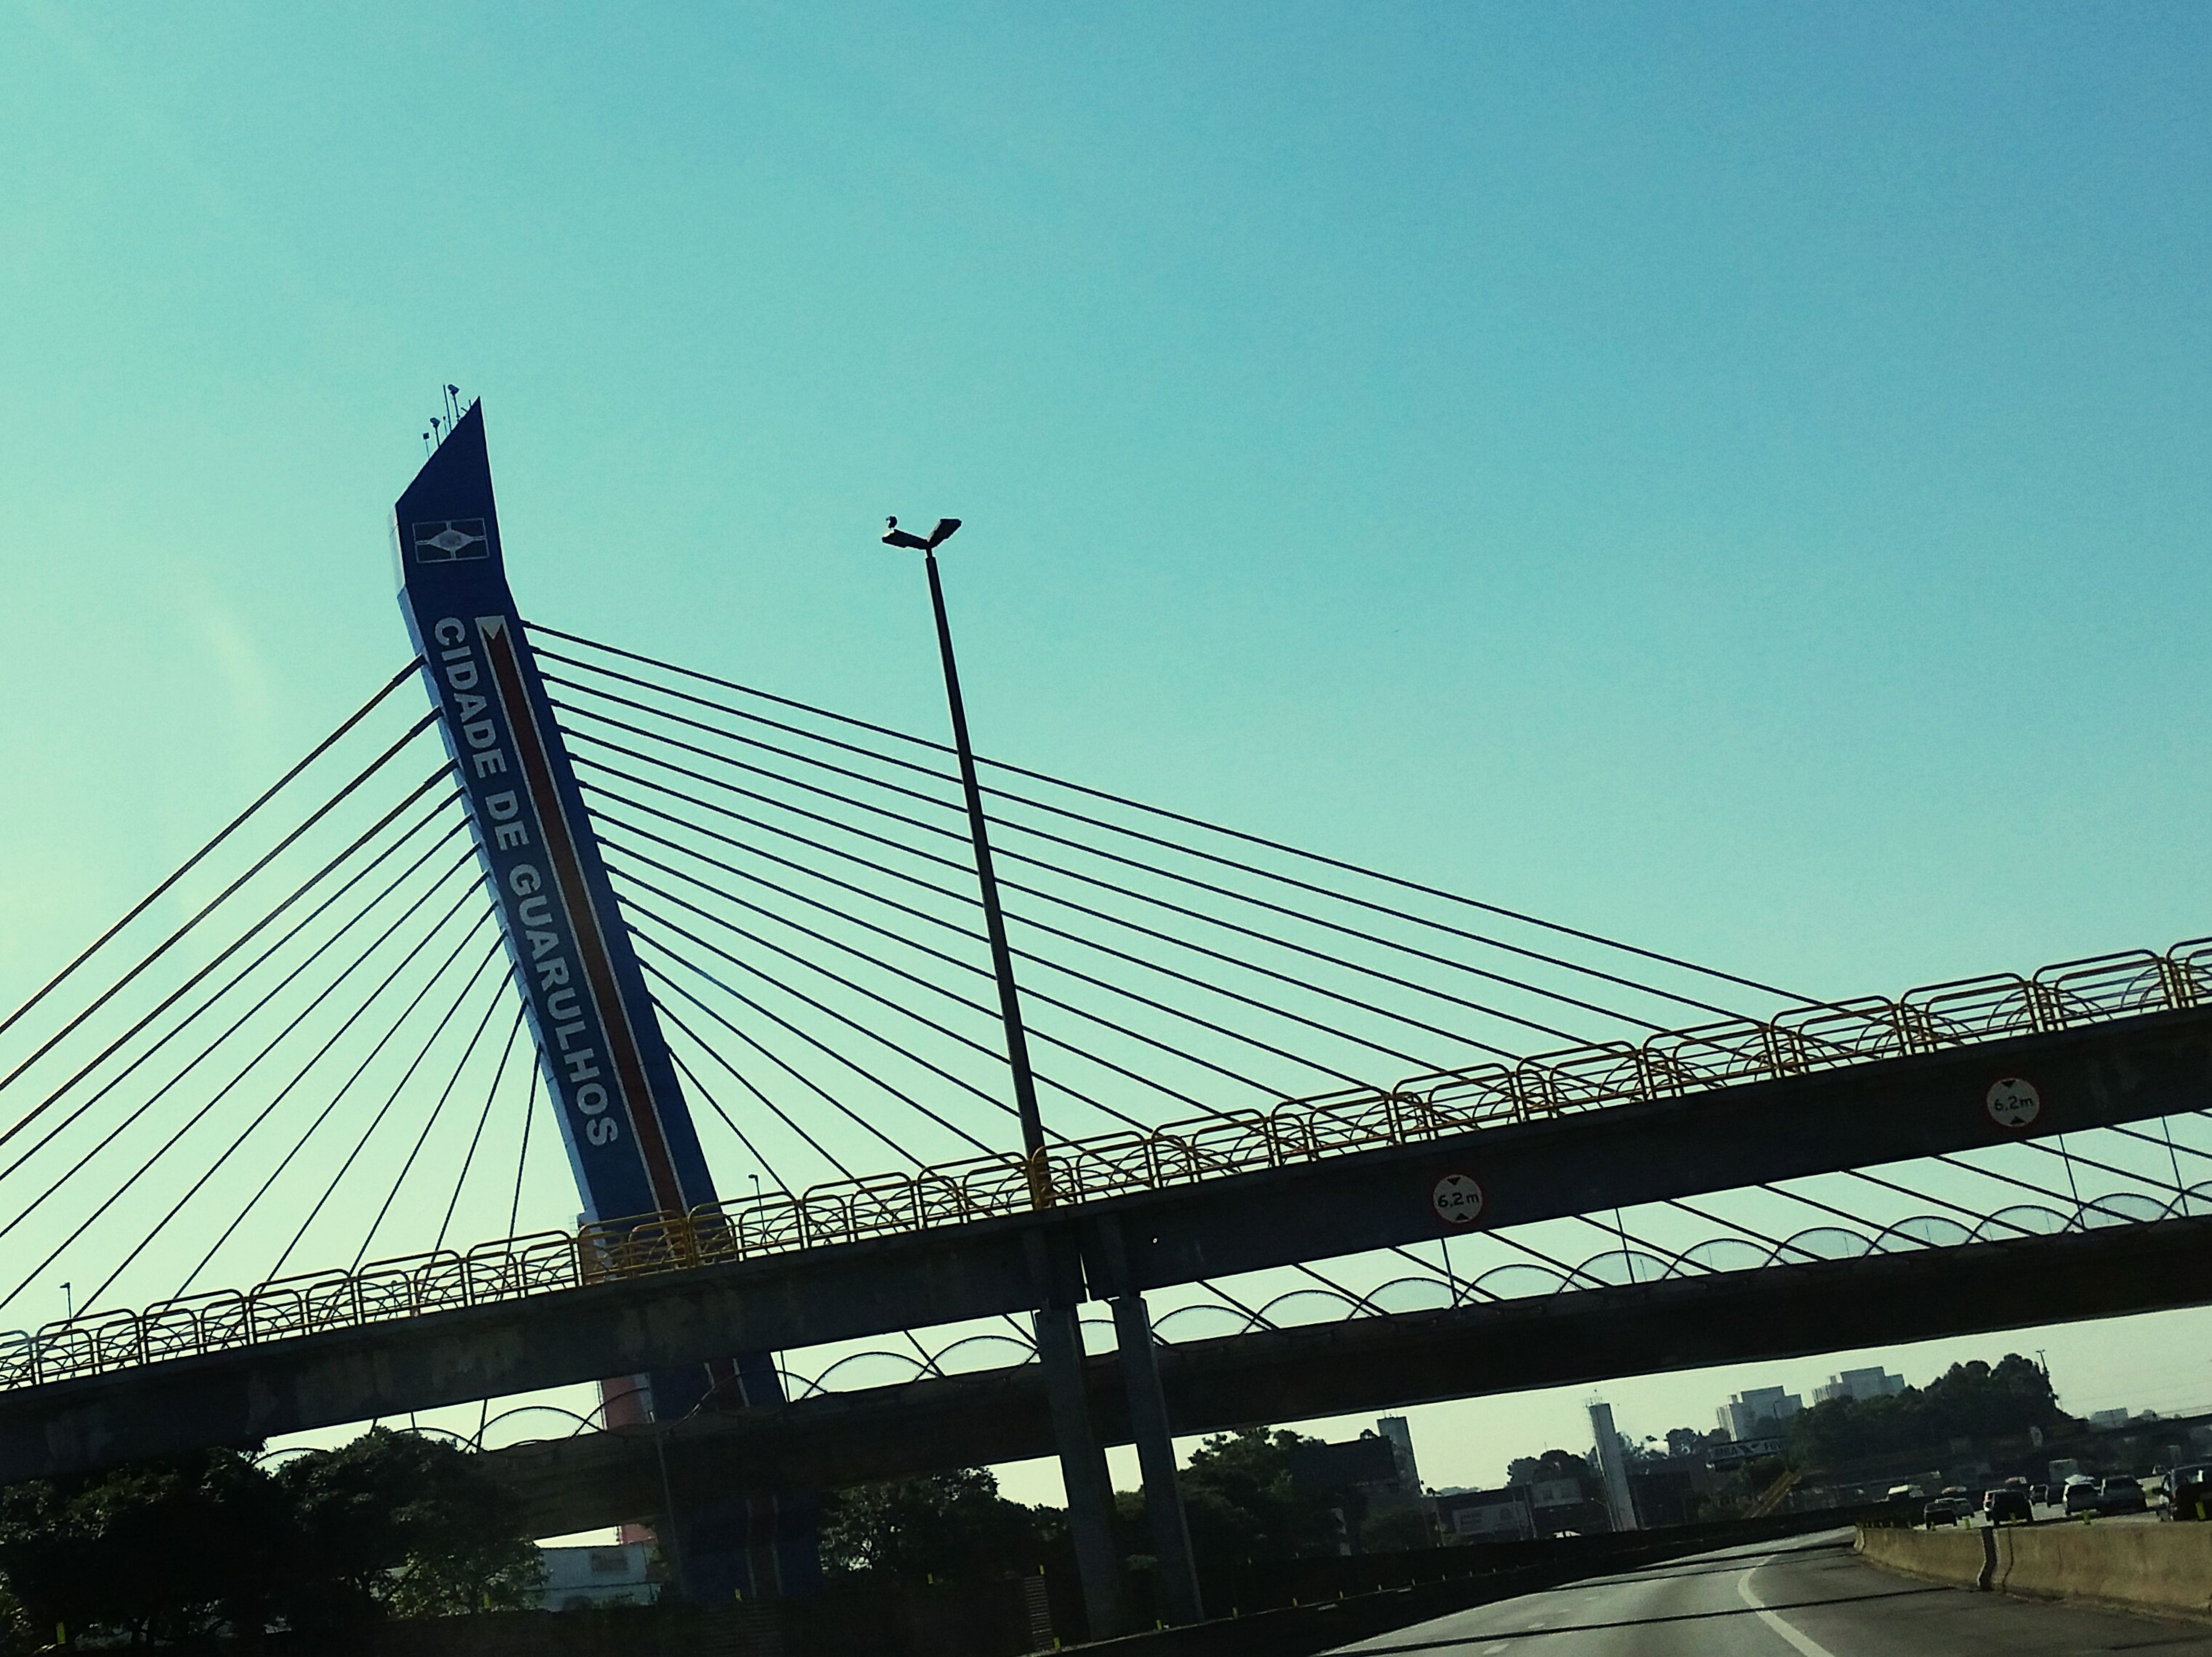 clear sky, built structure, architecture, low angle view, copy space, connection, bridge - man made structure, city, engineering, building exterior, blue, bridge, transportation, suspension bridge, outdoors, modern, silhouette, sky, day, metal